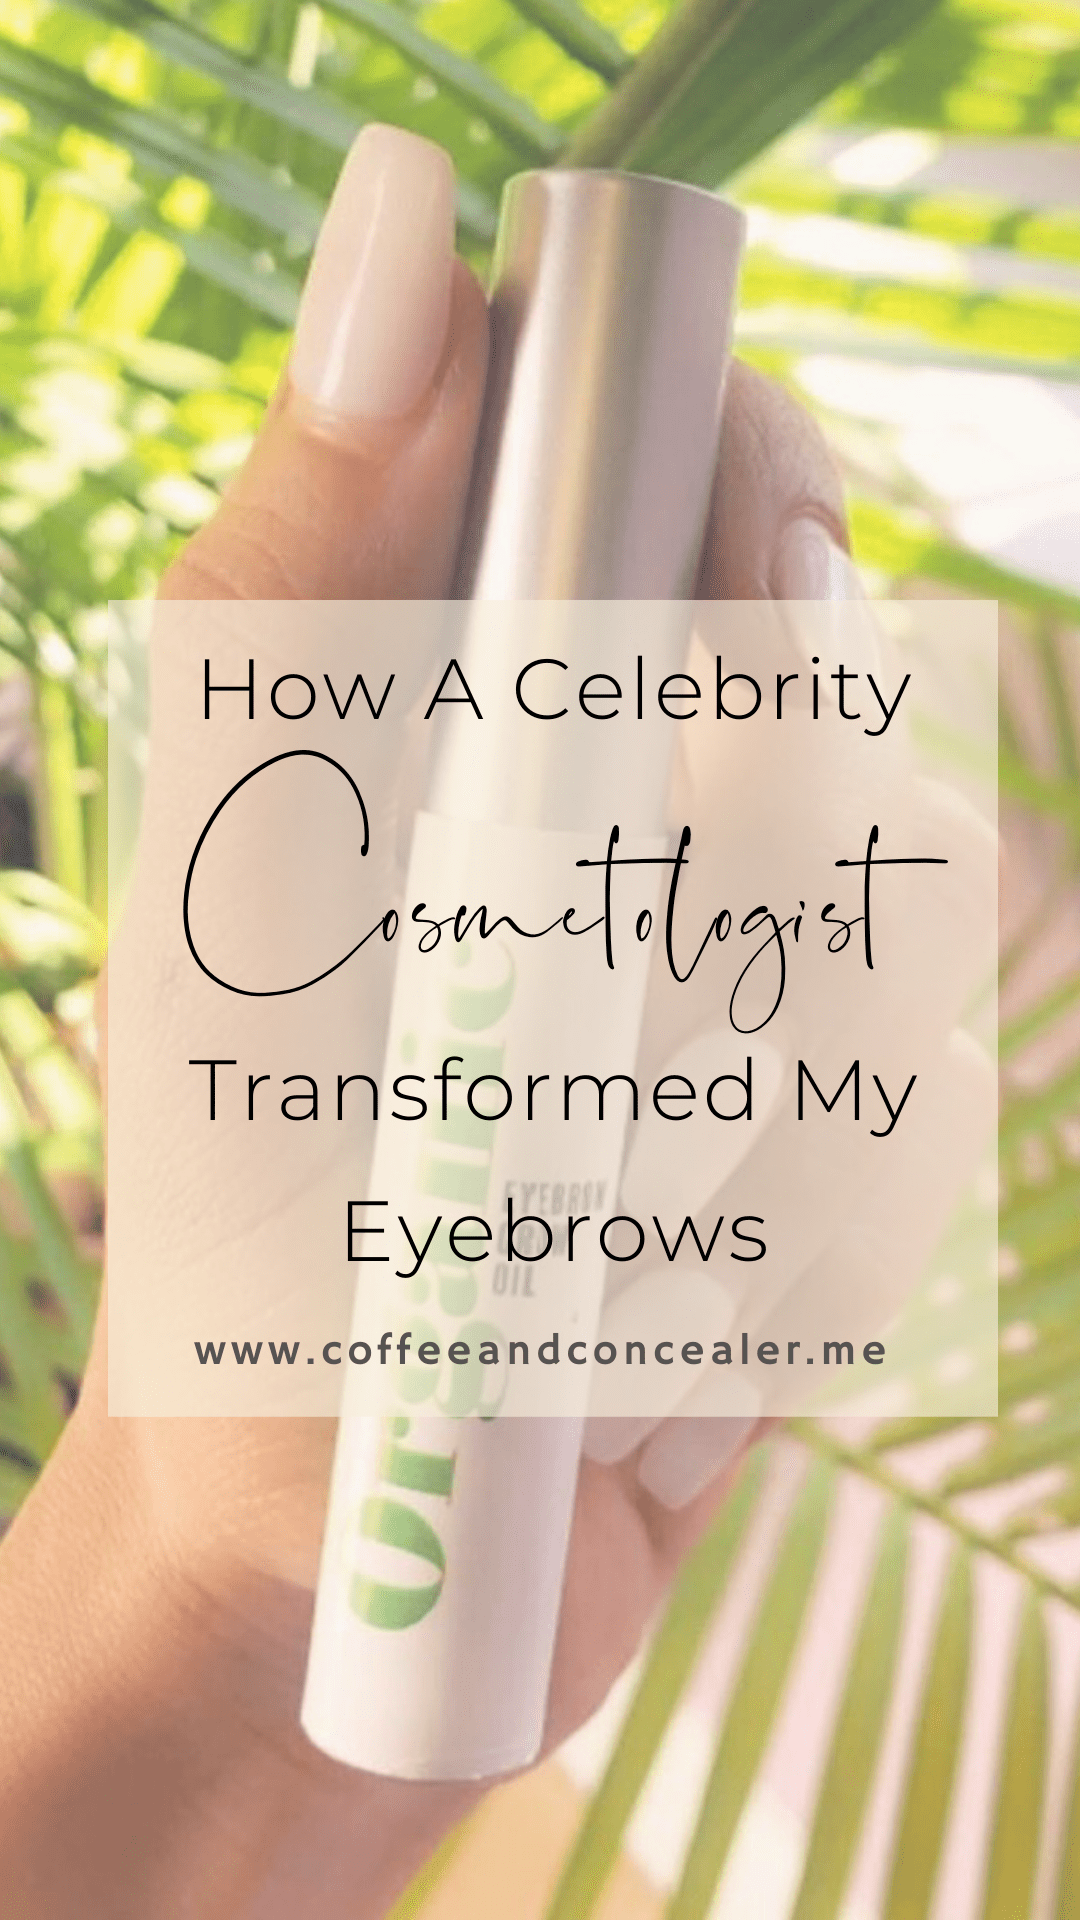 How A Celebrity Cosmetologist Transformed My Eyebrows